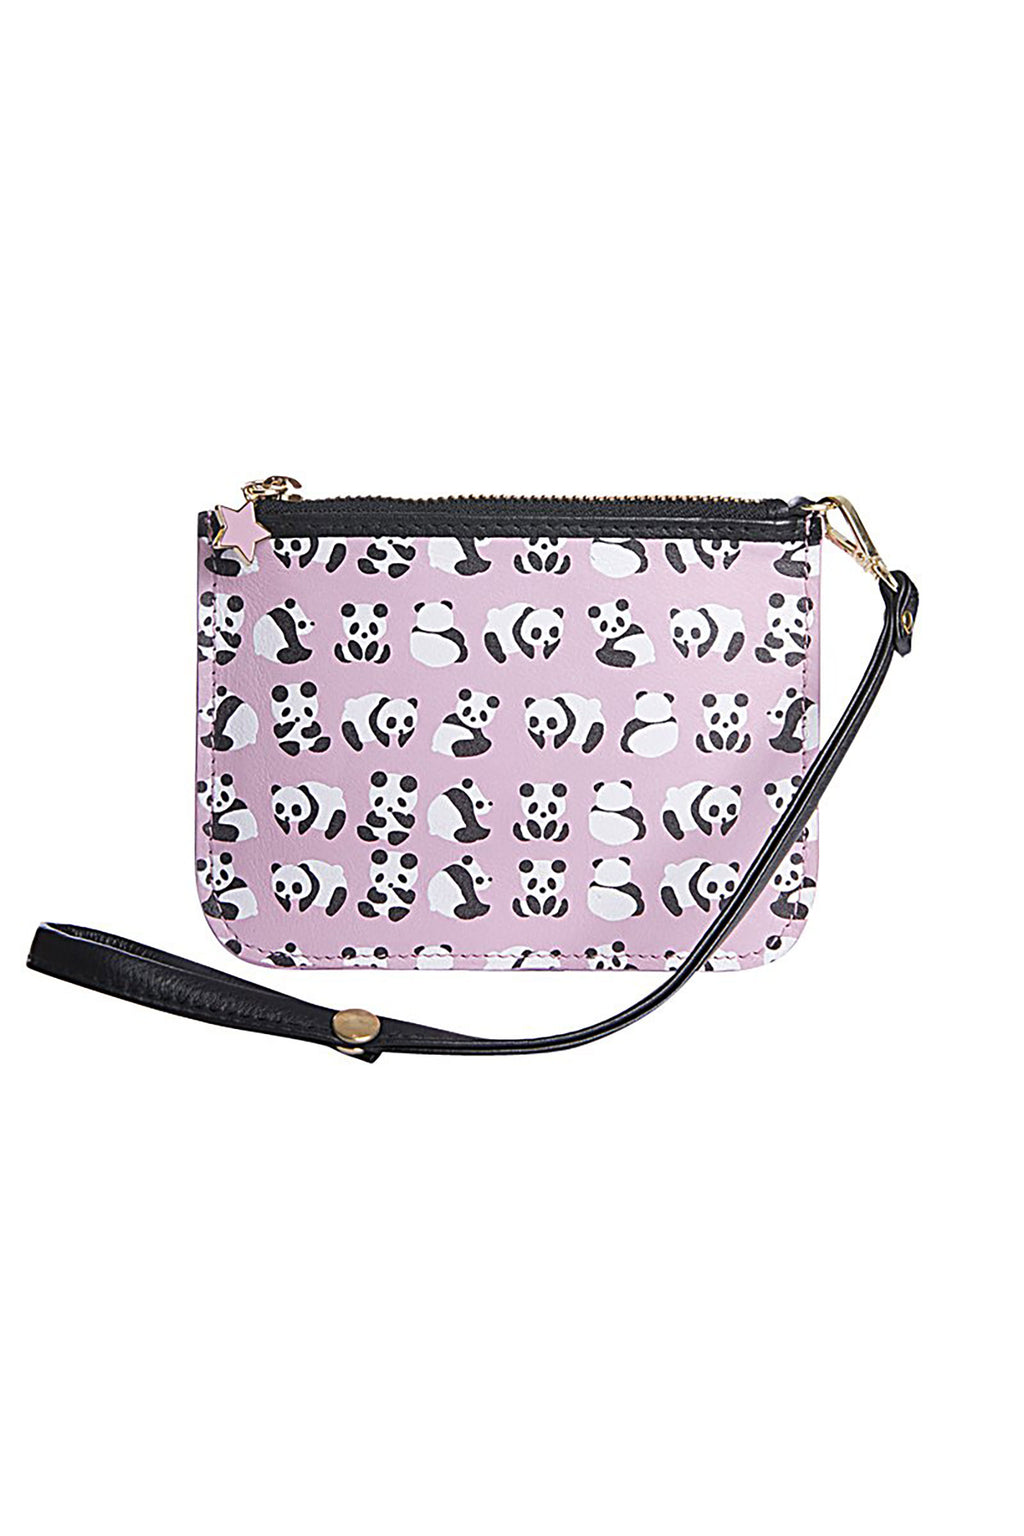 All Over Panda Print Zipper Pouch